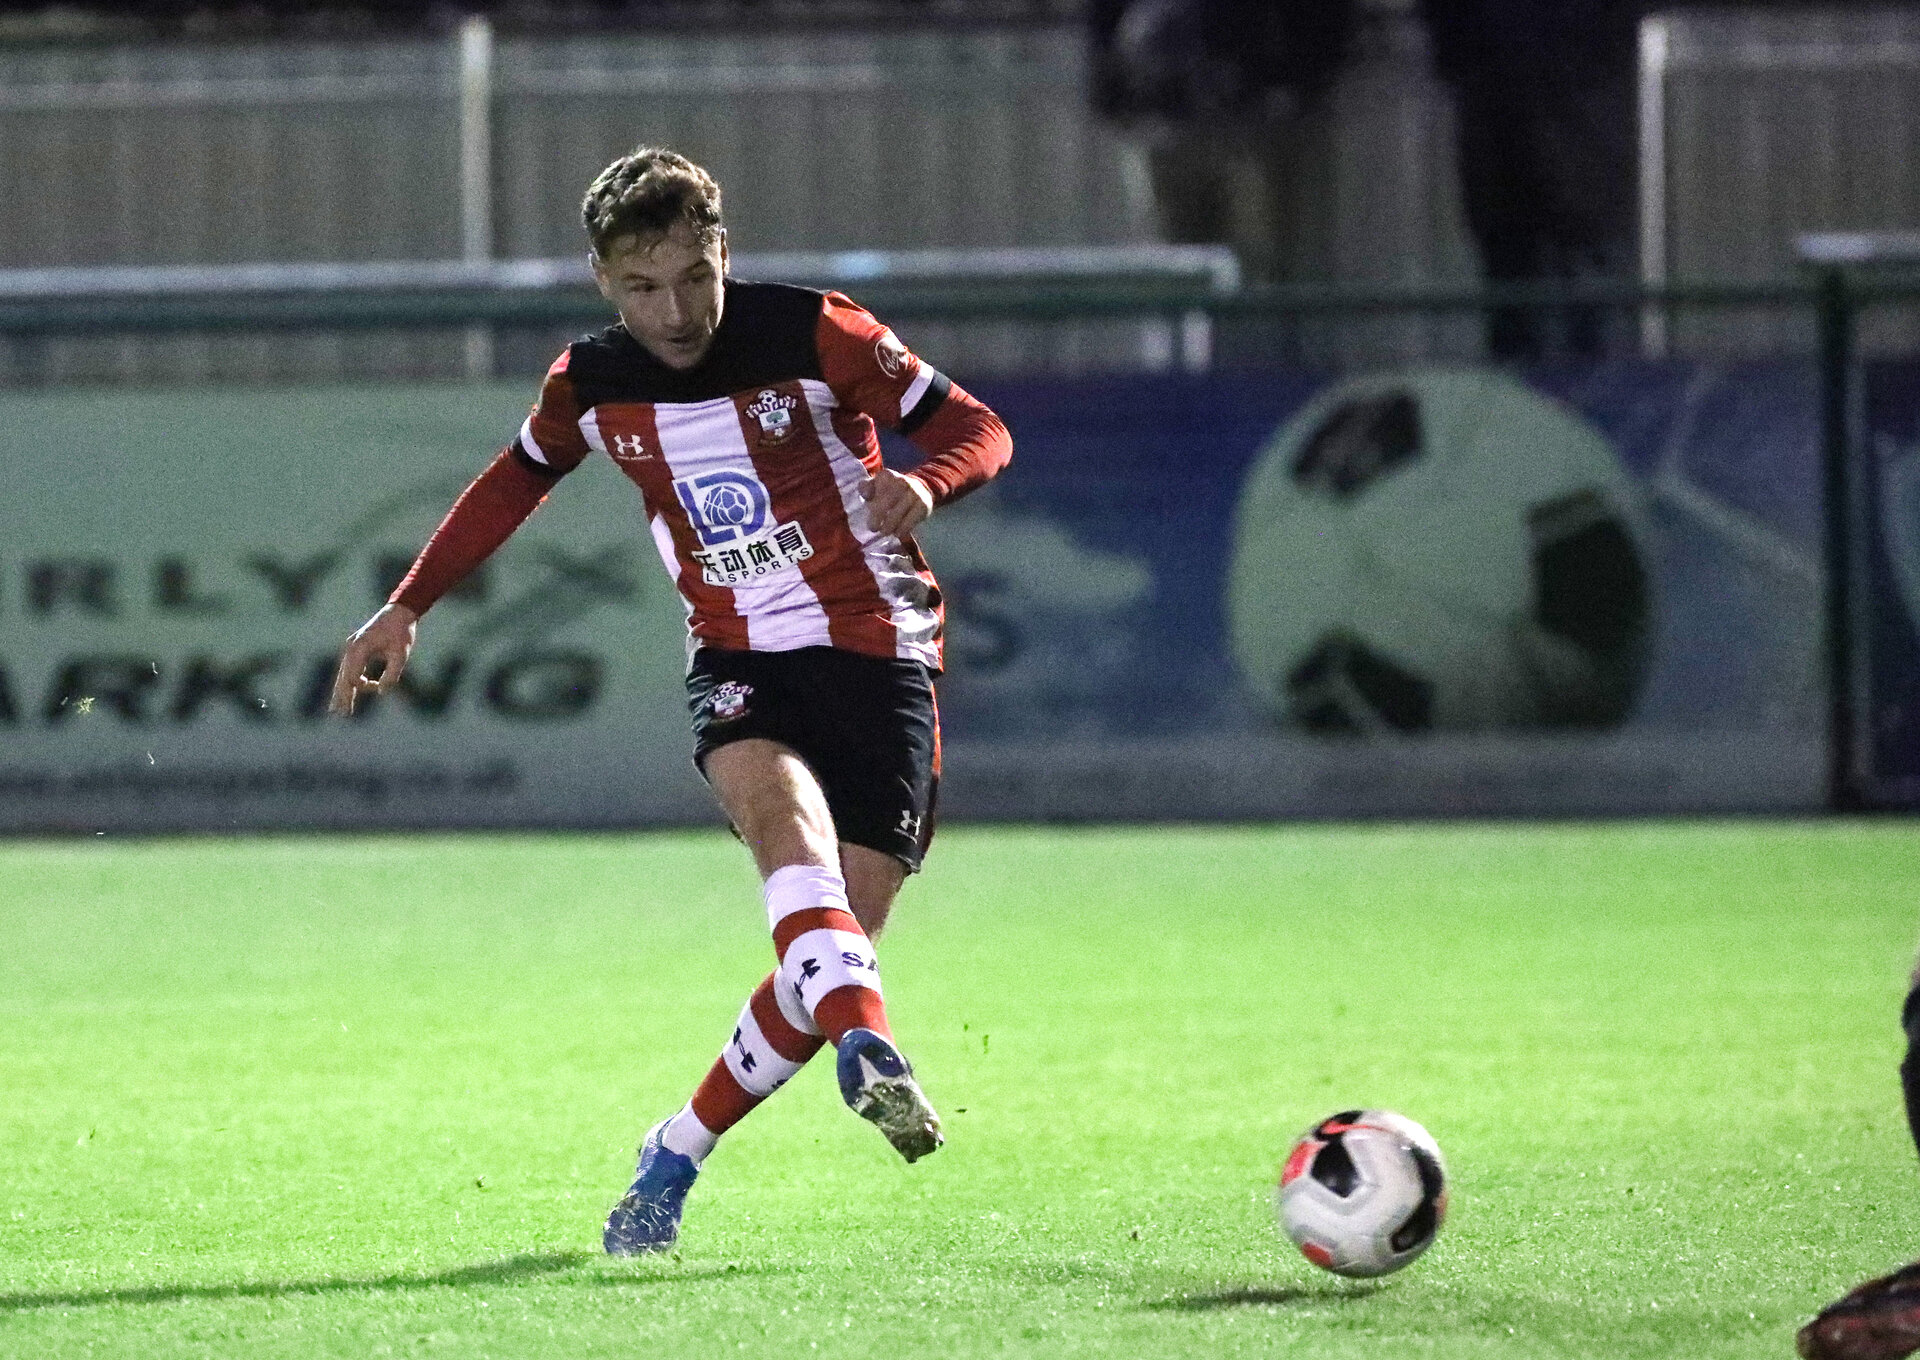 SOUTHAMPTON, ENGLAND - NOVEMBER 16: Callum Watts scores the third goal during the match between Southampton FC U23s and Royal Navy at Snows Stadium, Testwood, Totton on November 16, 2019 in the Hampshire Senior Cup at Southampton, United Kingdom. (Photo by Chris Moorhouse/Southampton FC via Getty Images)